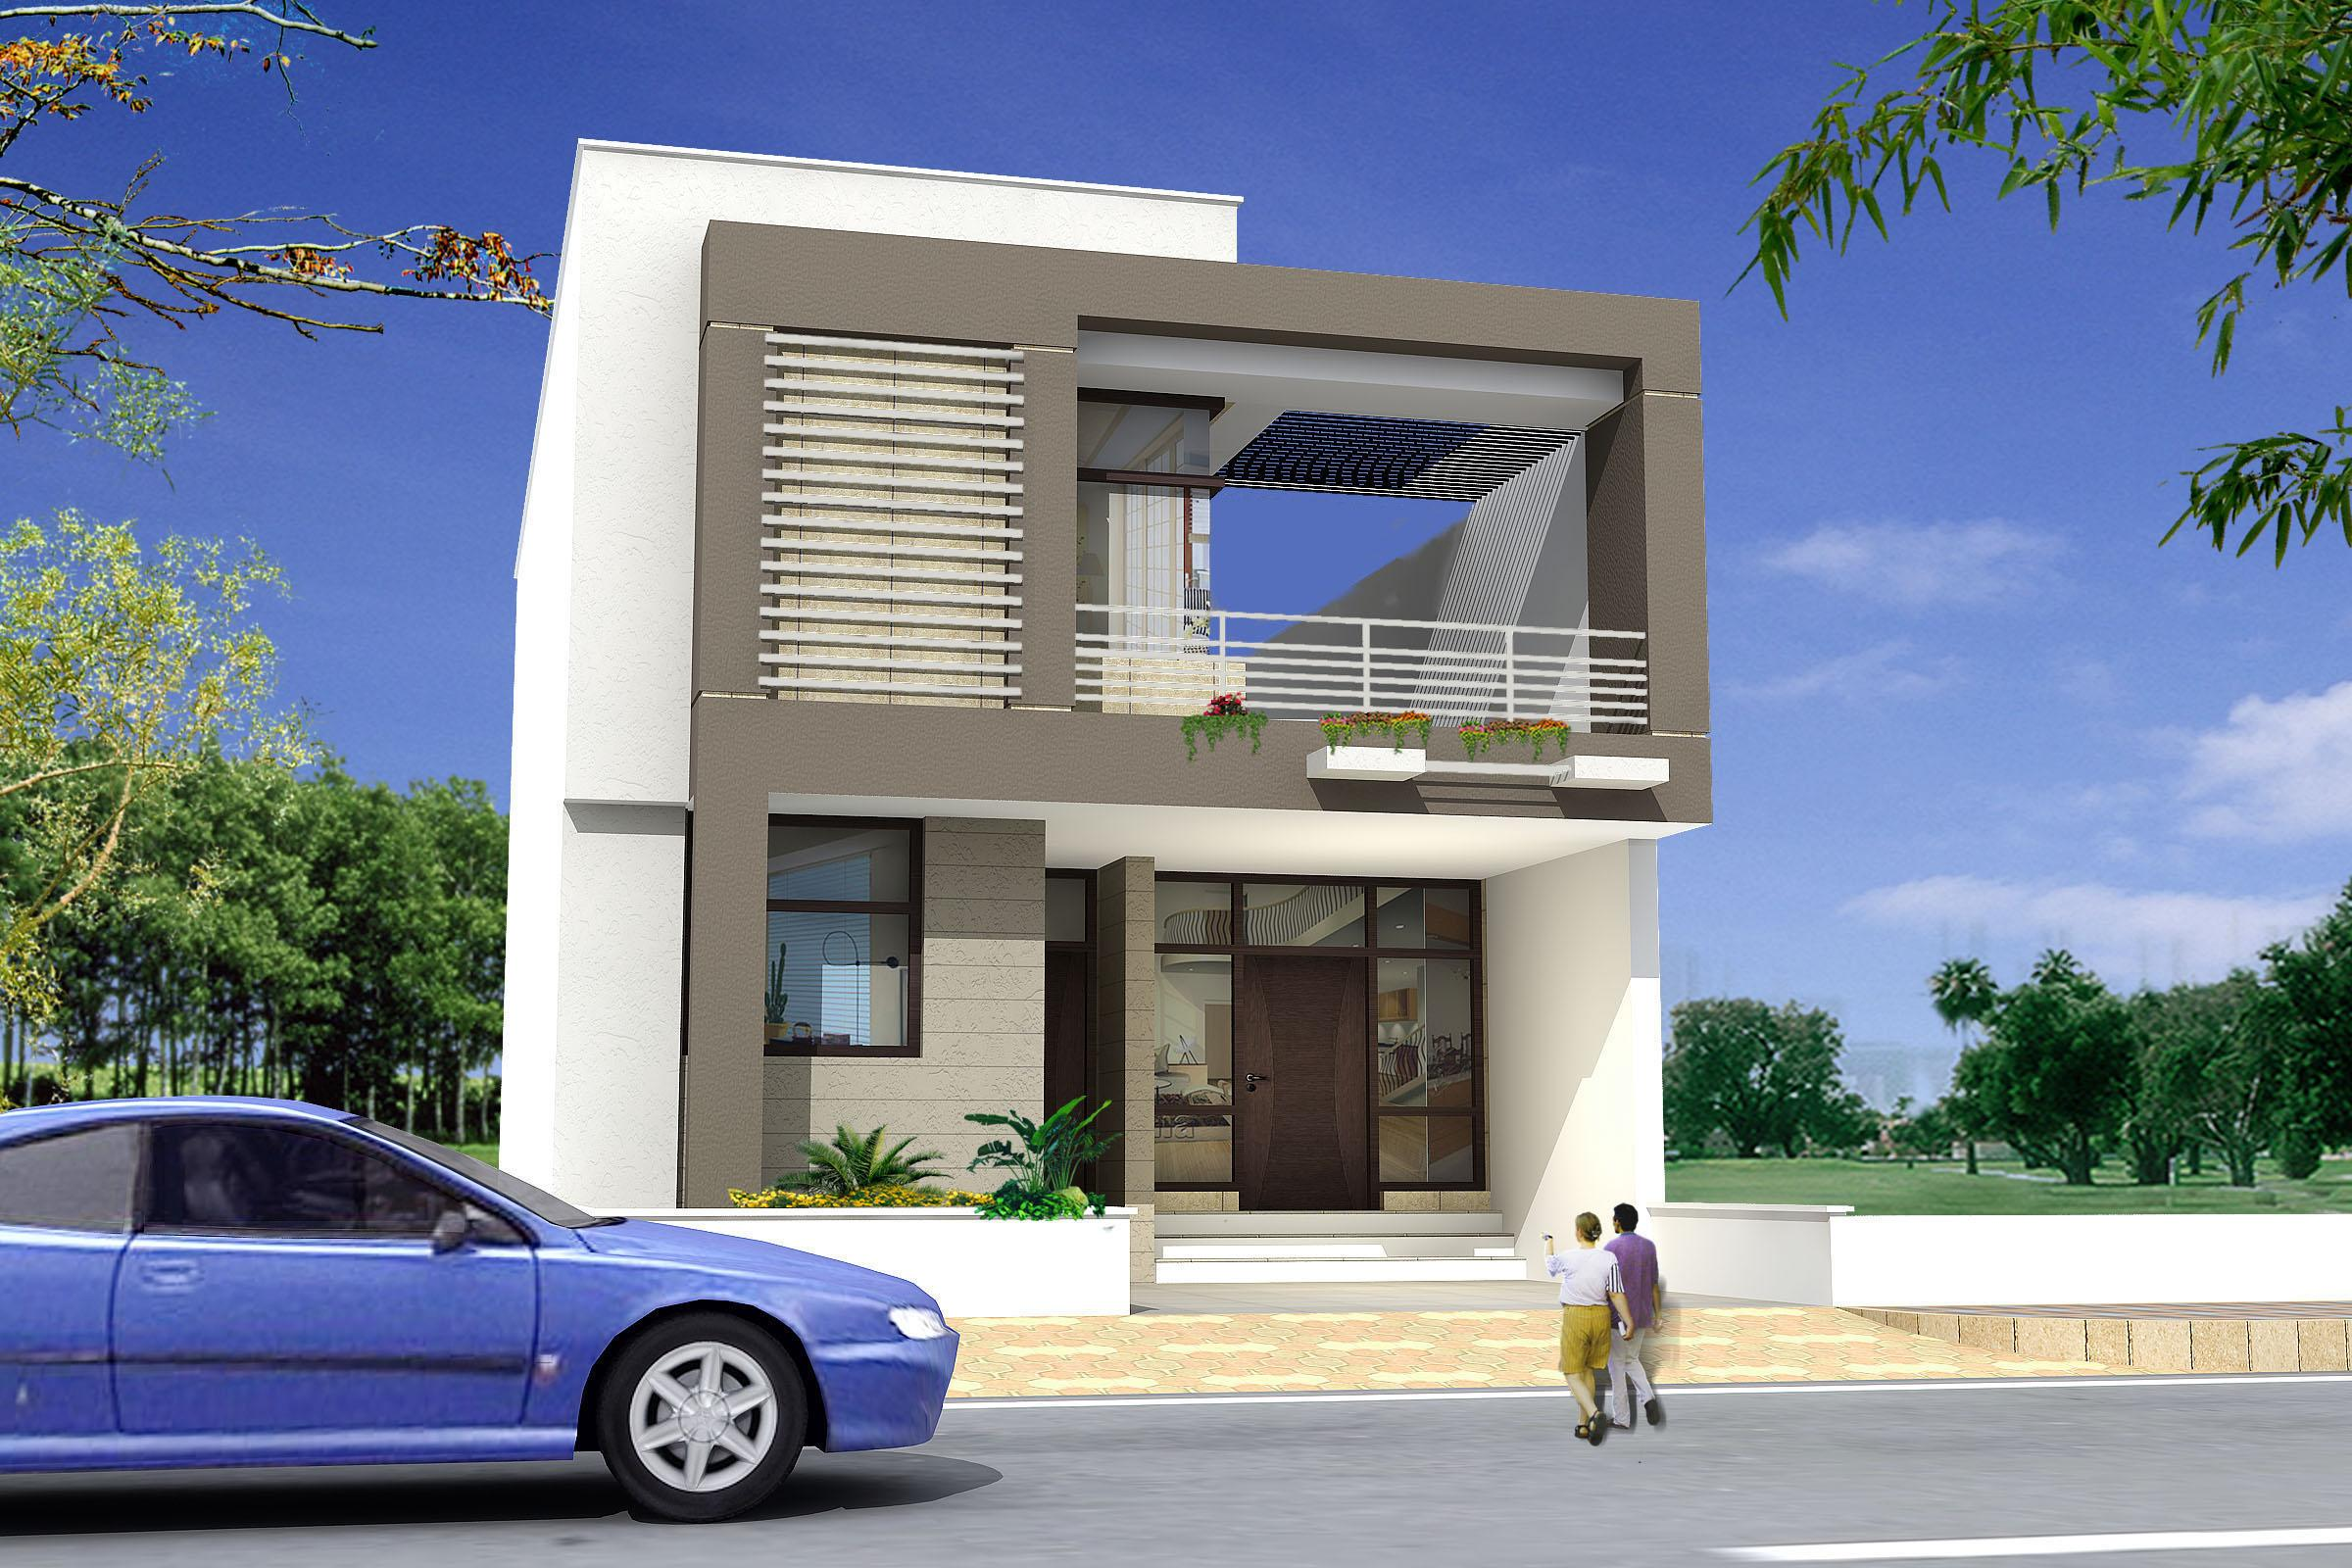 Elevation design for the house - GharExpert